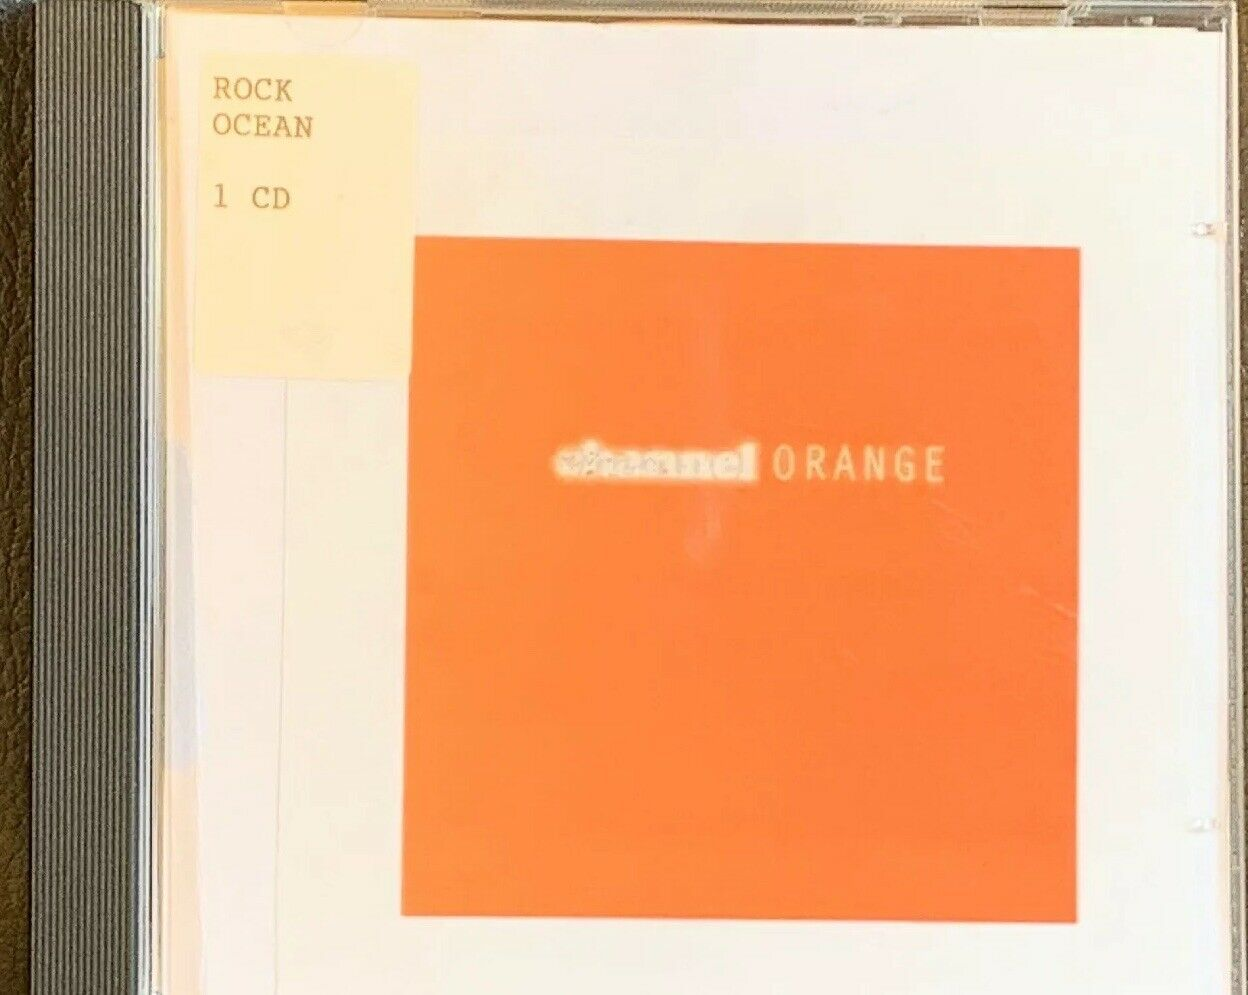 OCEAN FRANK CHANNEL ORANGE - ex-library